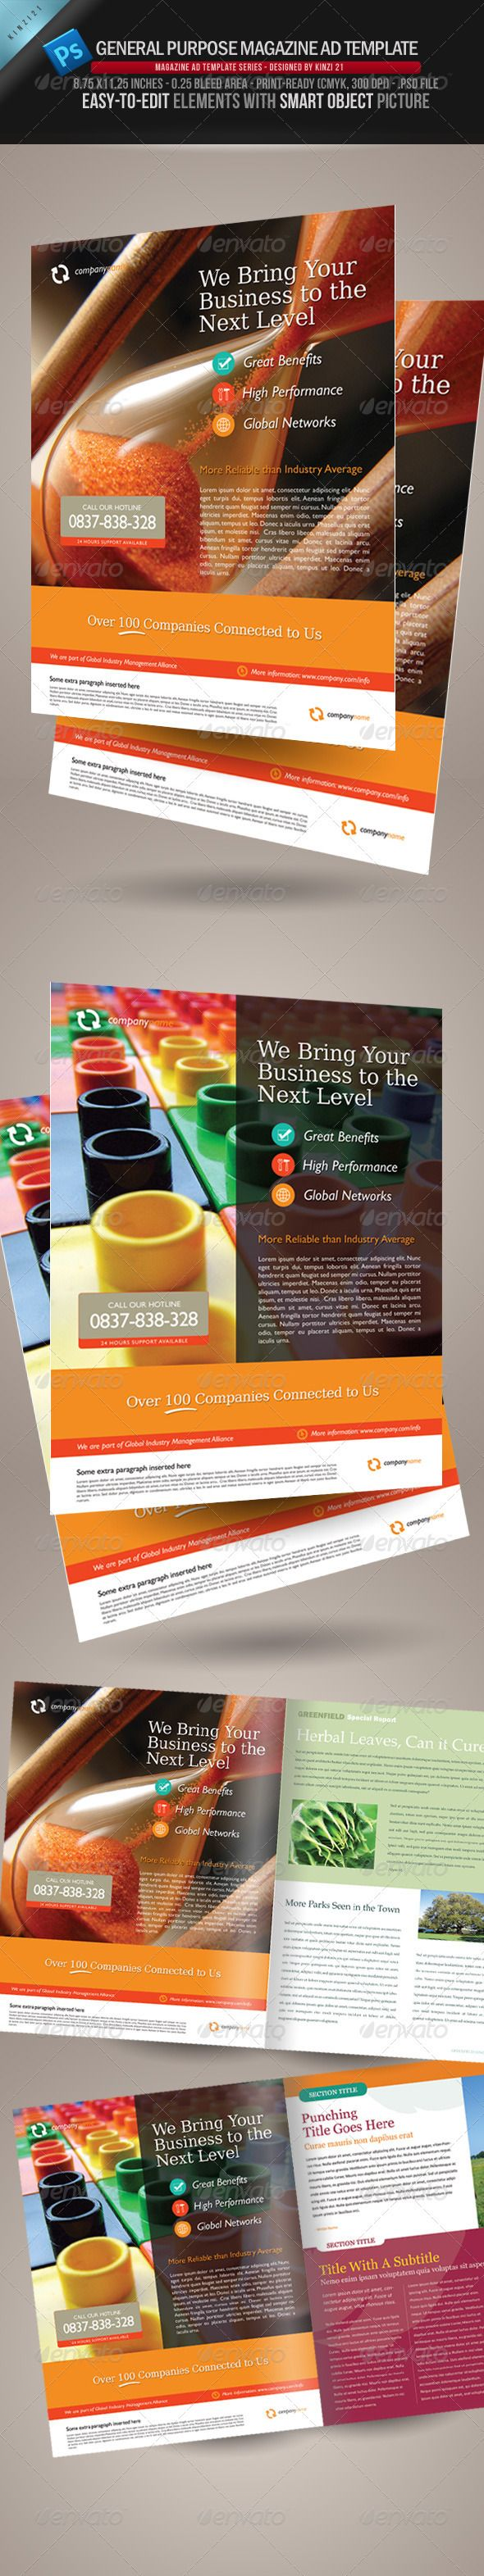 1000+ images about Brochure Newsletter designs on Pinterest ...